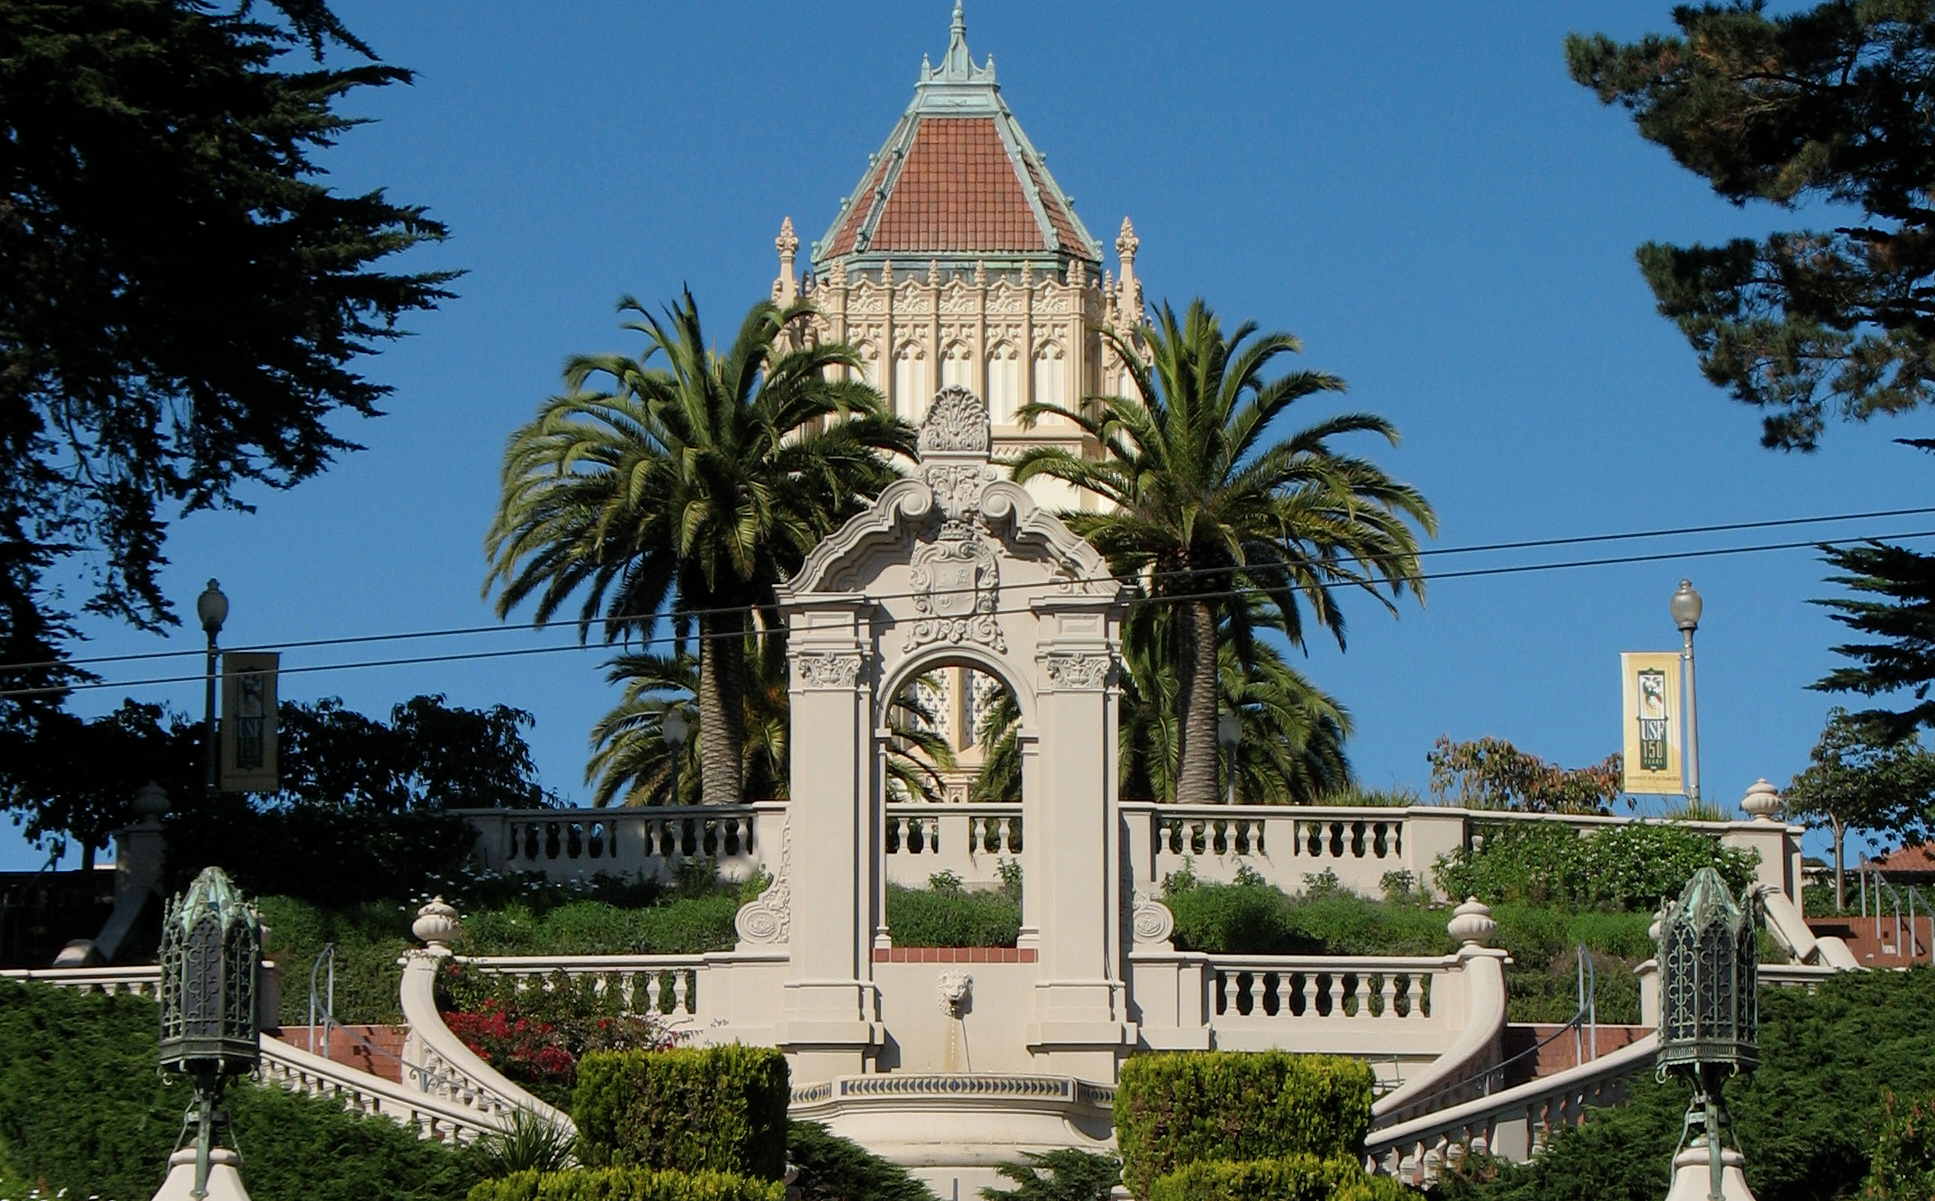 University of San Francisco (Photo/Flickr-Eric Chan CC BY 2.0)